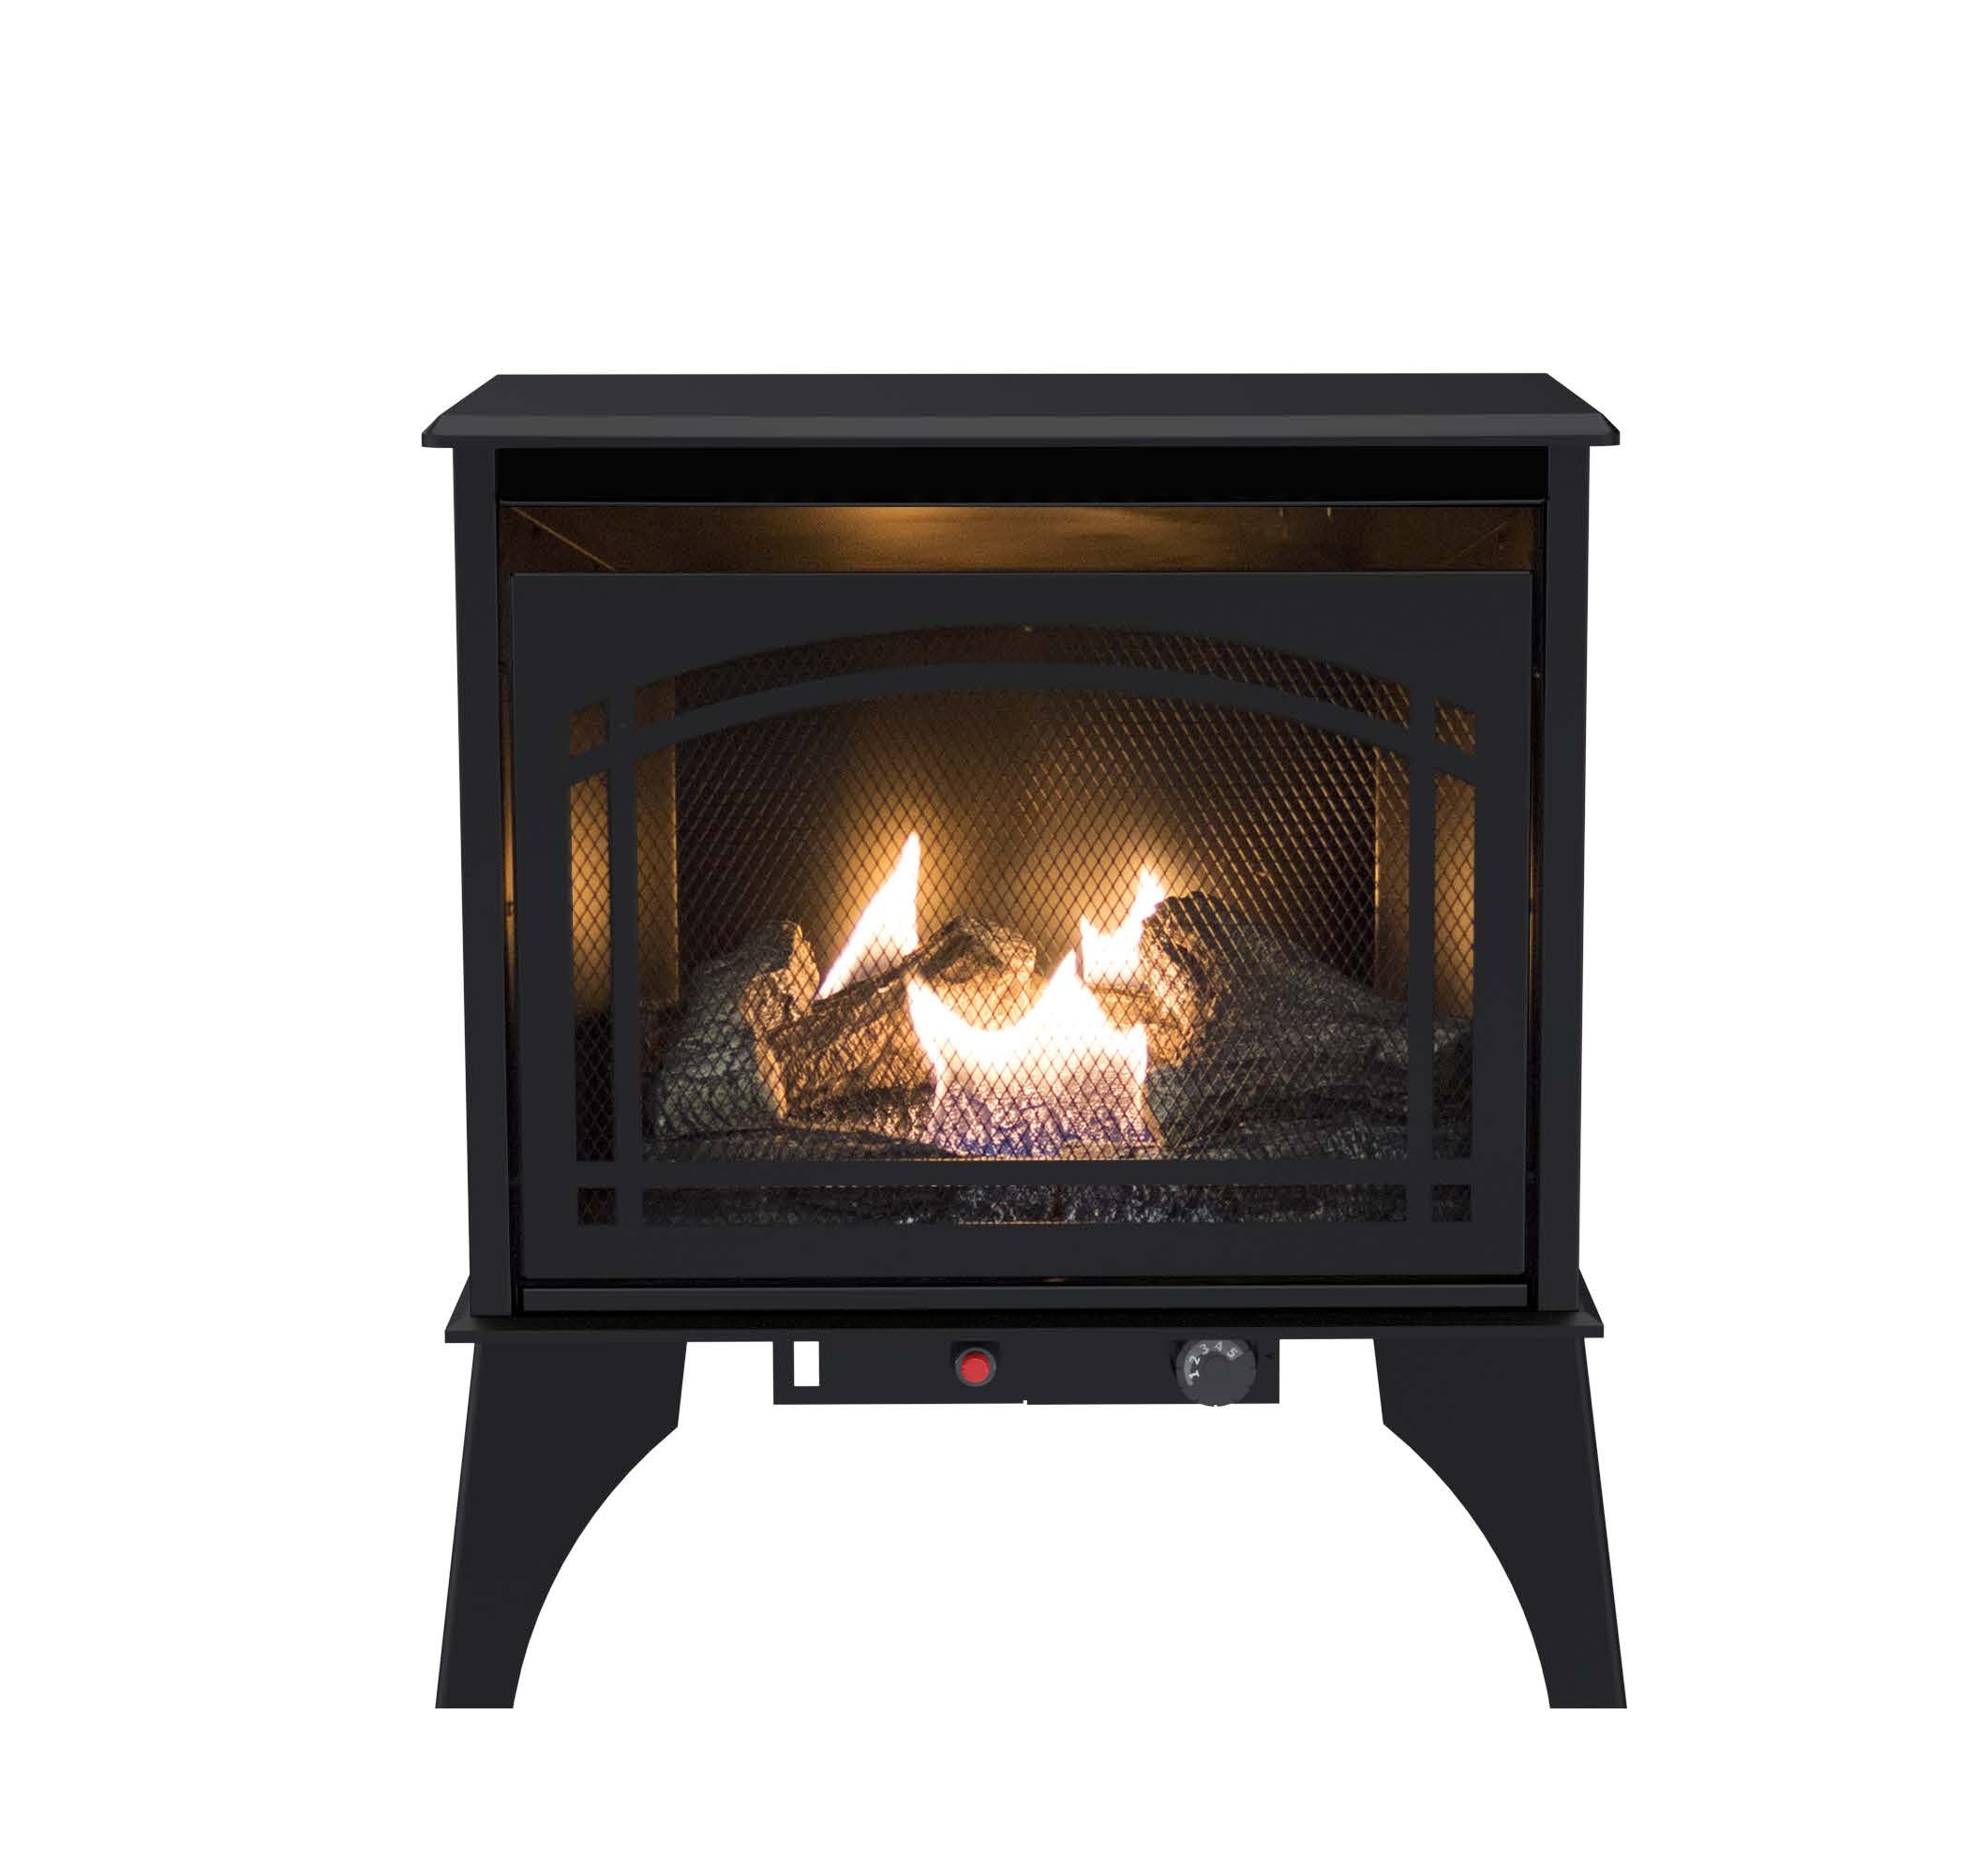 ventless natural gas fireplaces amazon com rh amazon com how do ventless natural gas fireplaces work ventless natural gas fireplace safety